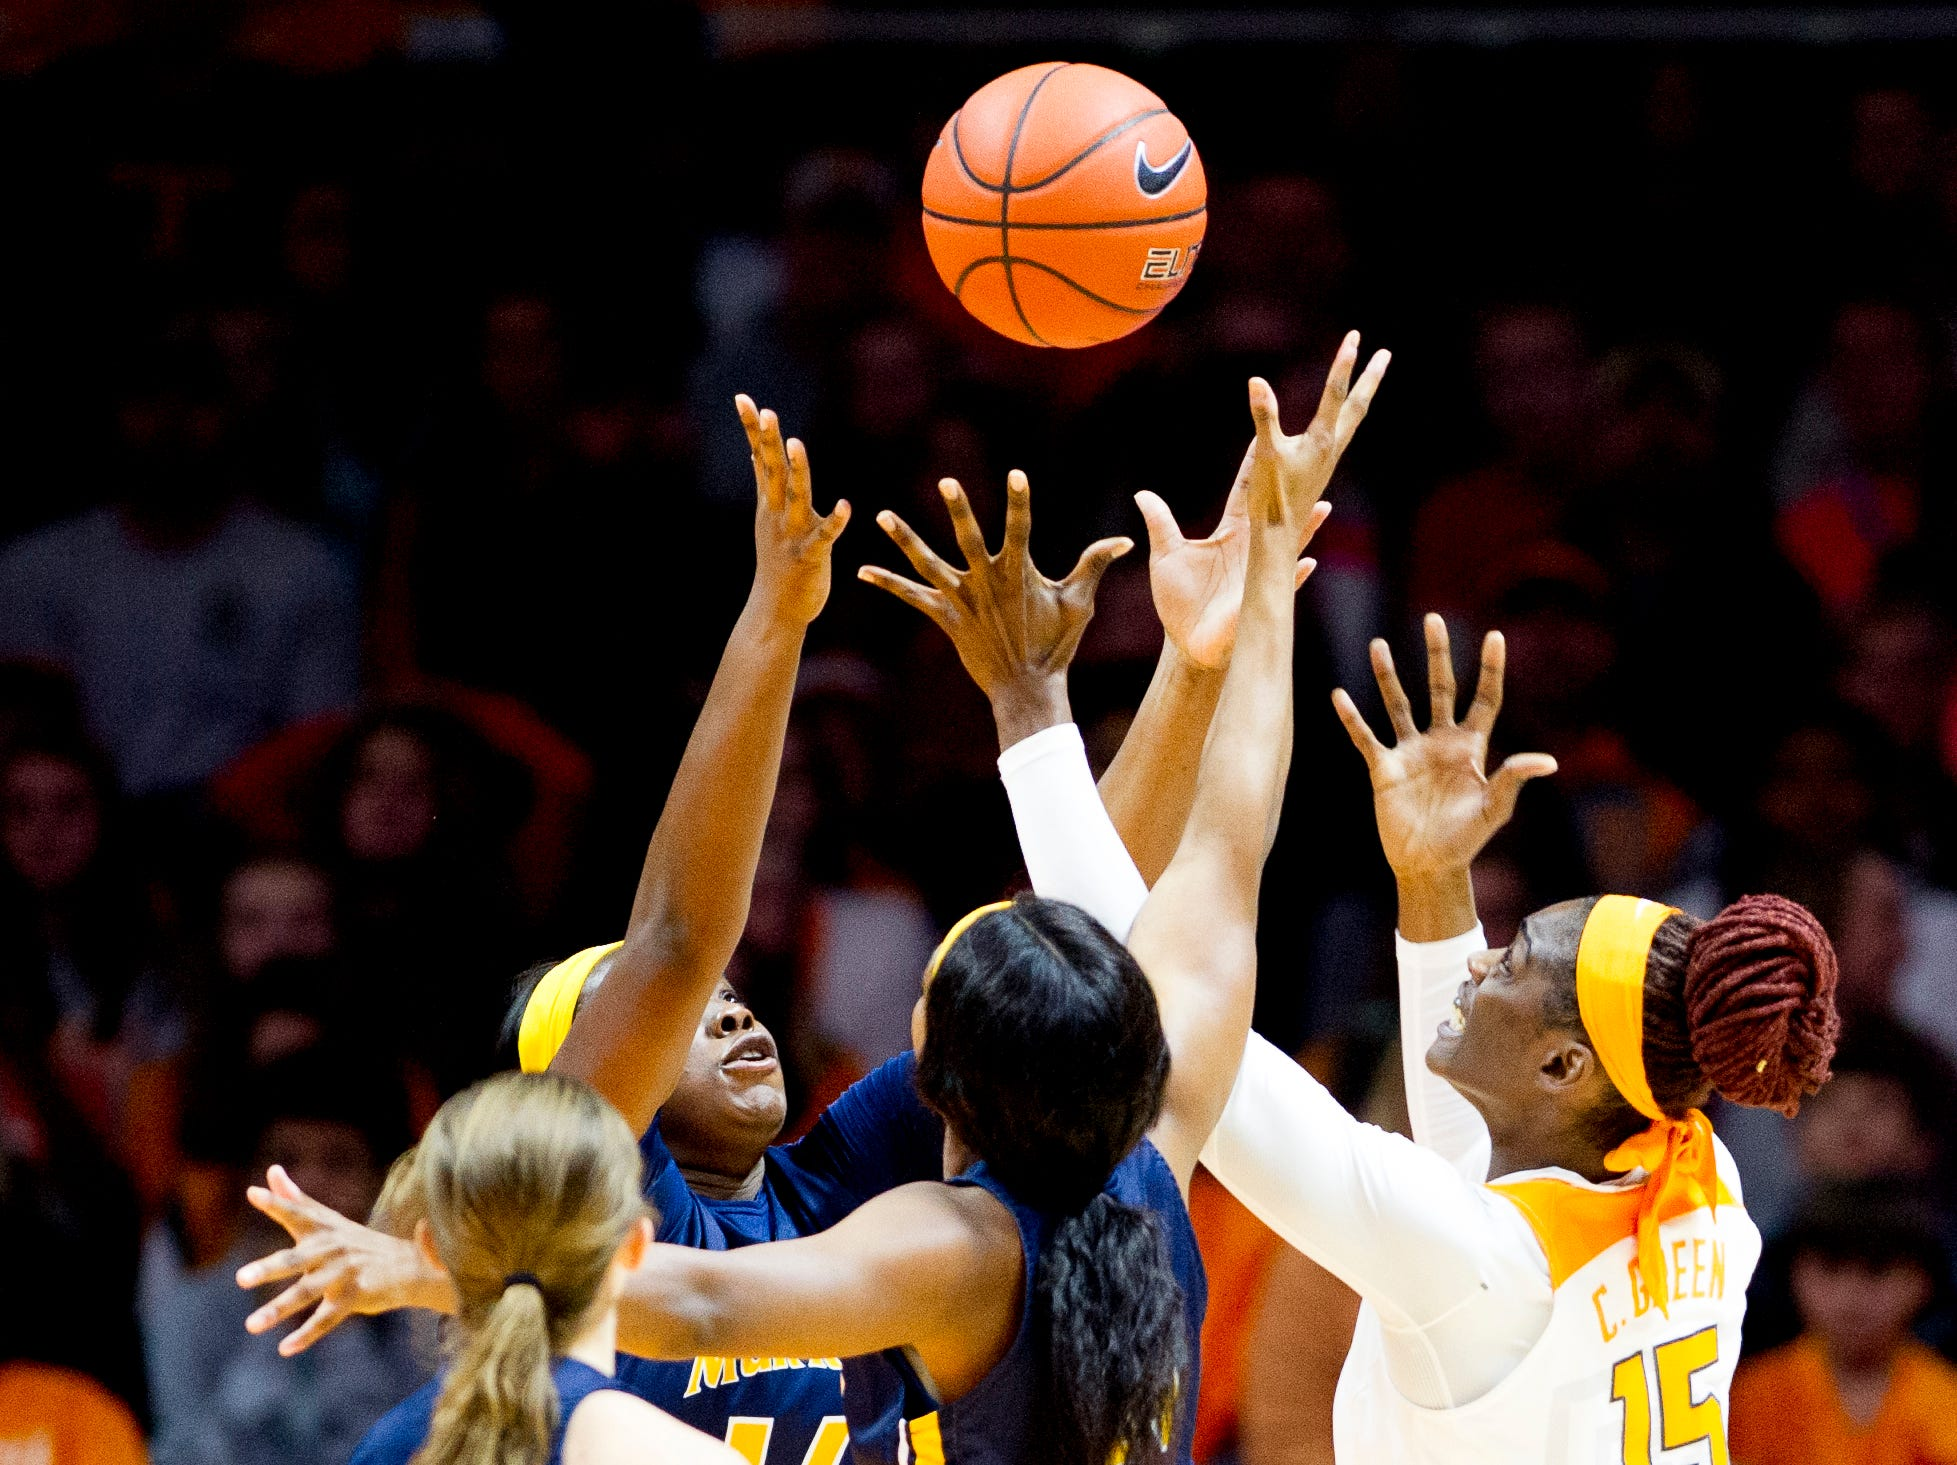 Players go for the rebound ball during a game between the Tennessee Lady Vols and Murray State at Thompson-Boling Arena in Knoxville, Tennessee on Friday, December 28, 2018.